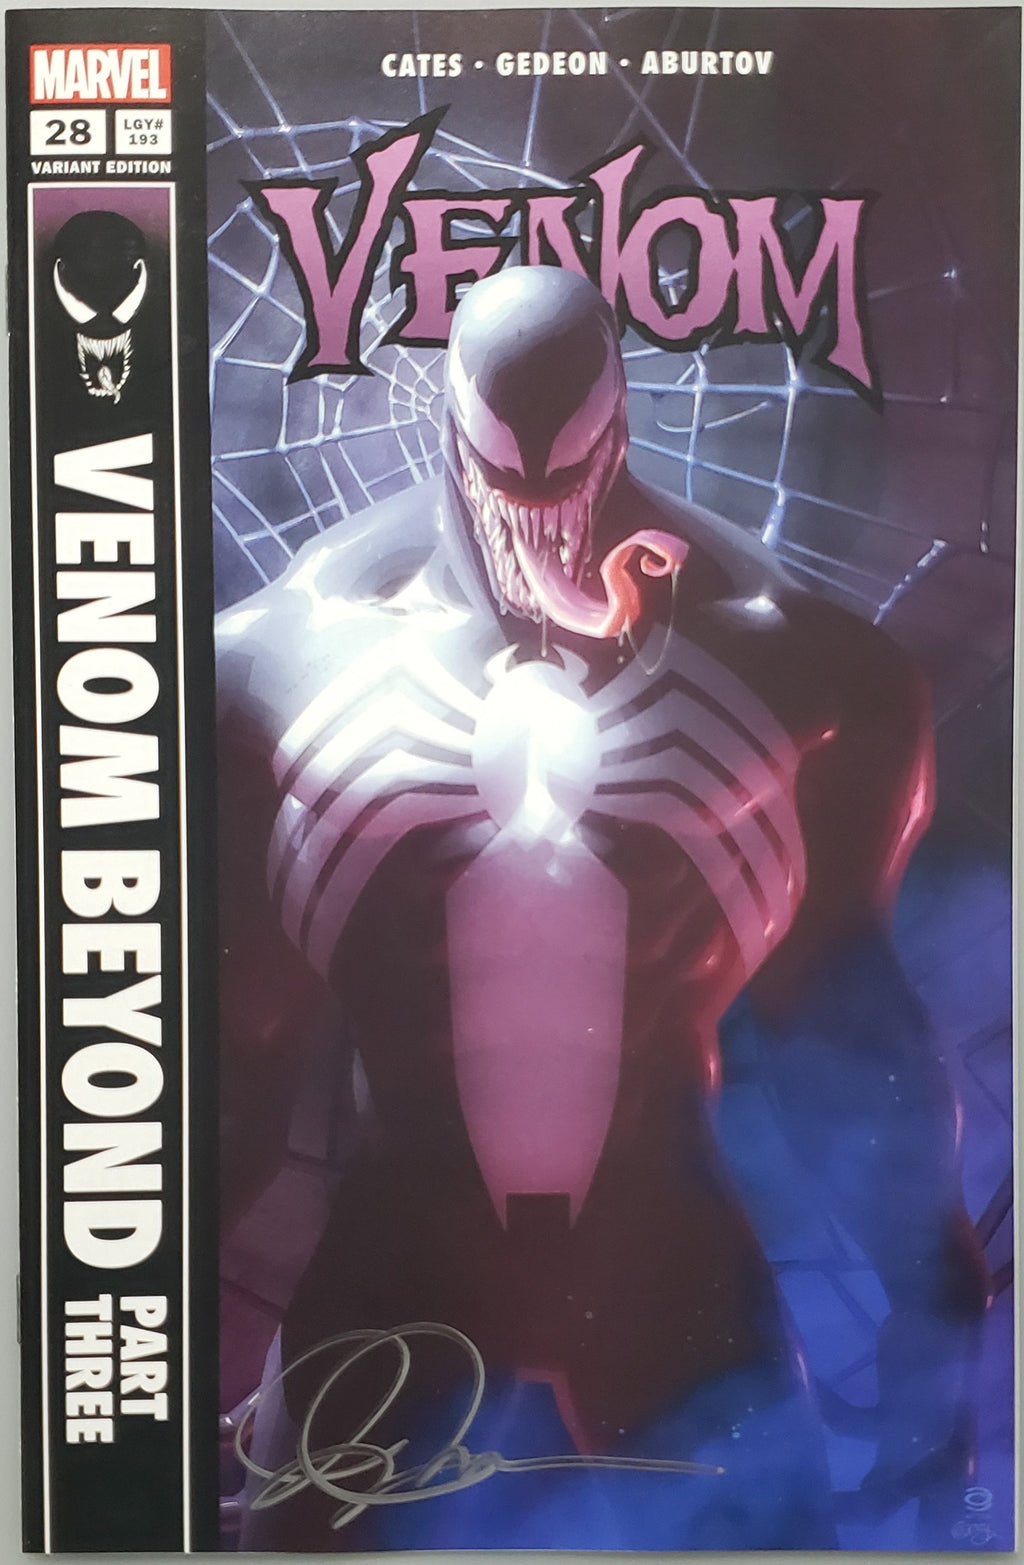 VENOM #28 ALEX GARNER COVER C VARIANT SIGNED BY ALEX GARNER